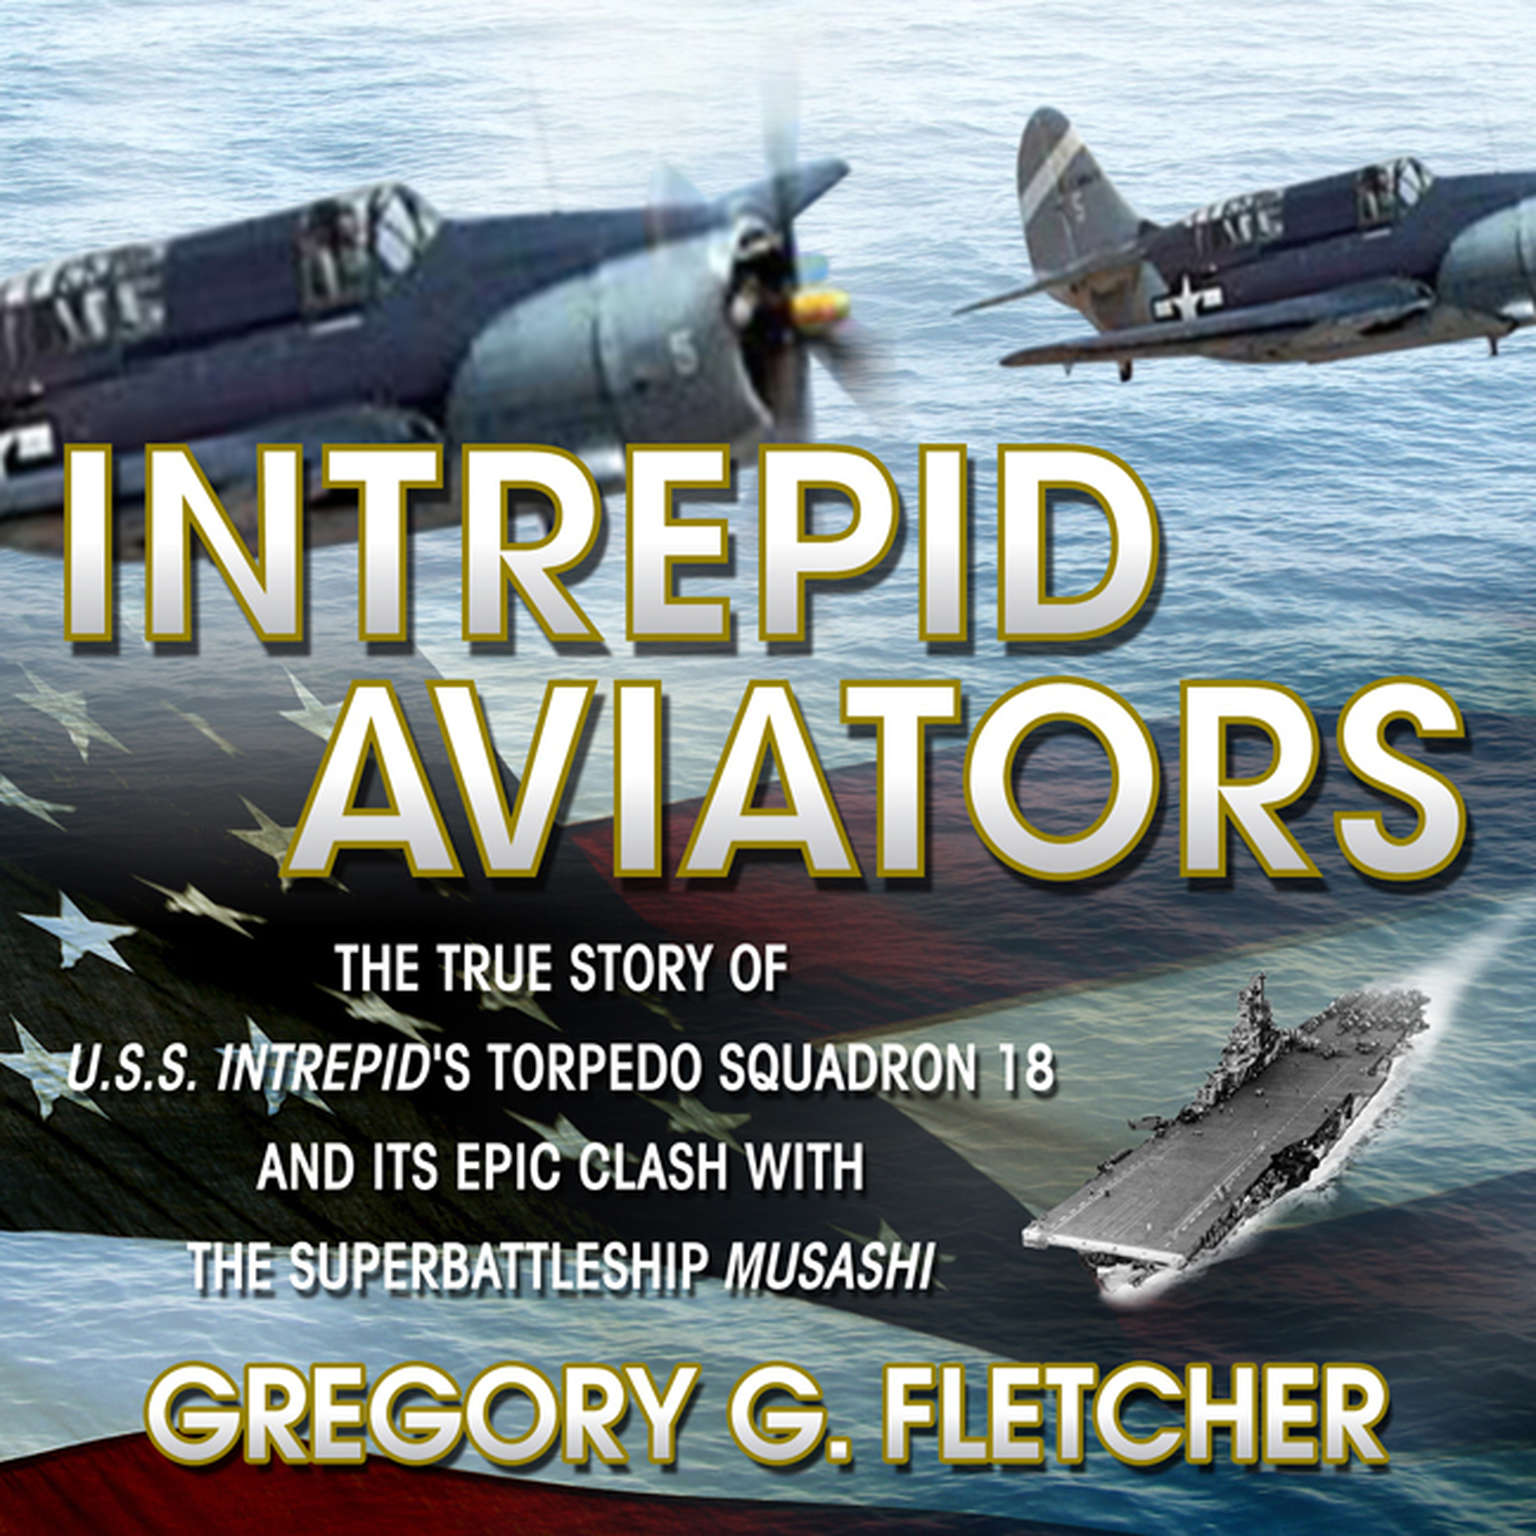 Printable Intrepid Aviators: The True Story of U.S.S. Intrepid's Torpedo Squadron 18 and Its Epic Clash With the Superbattleship Musashi Audiobook Cover Art